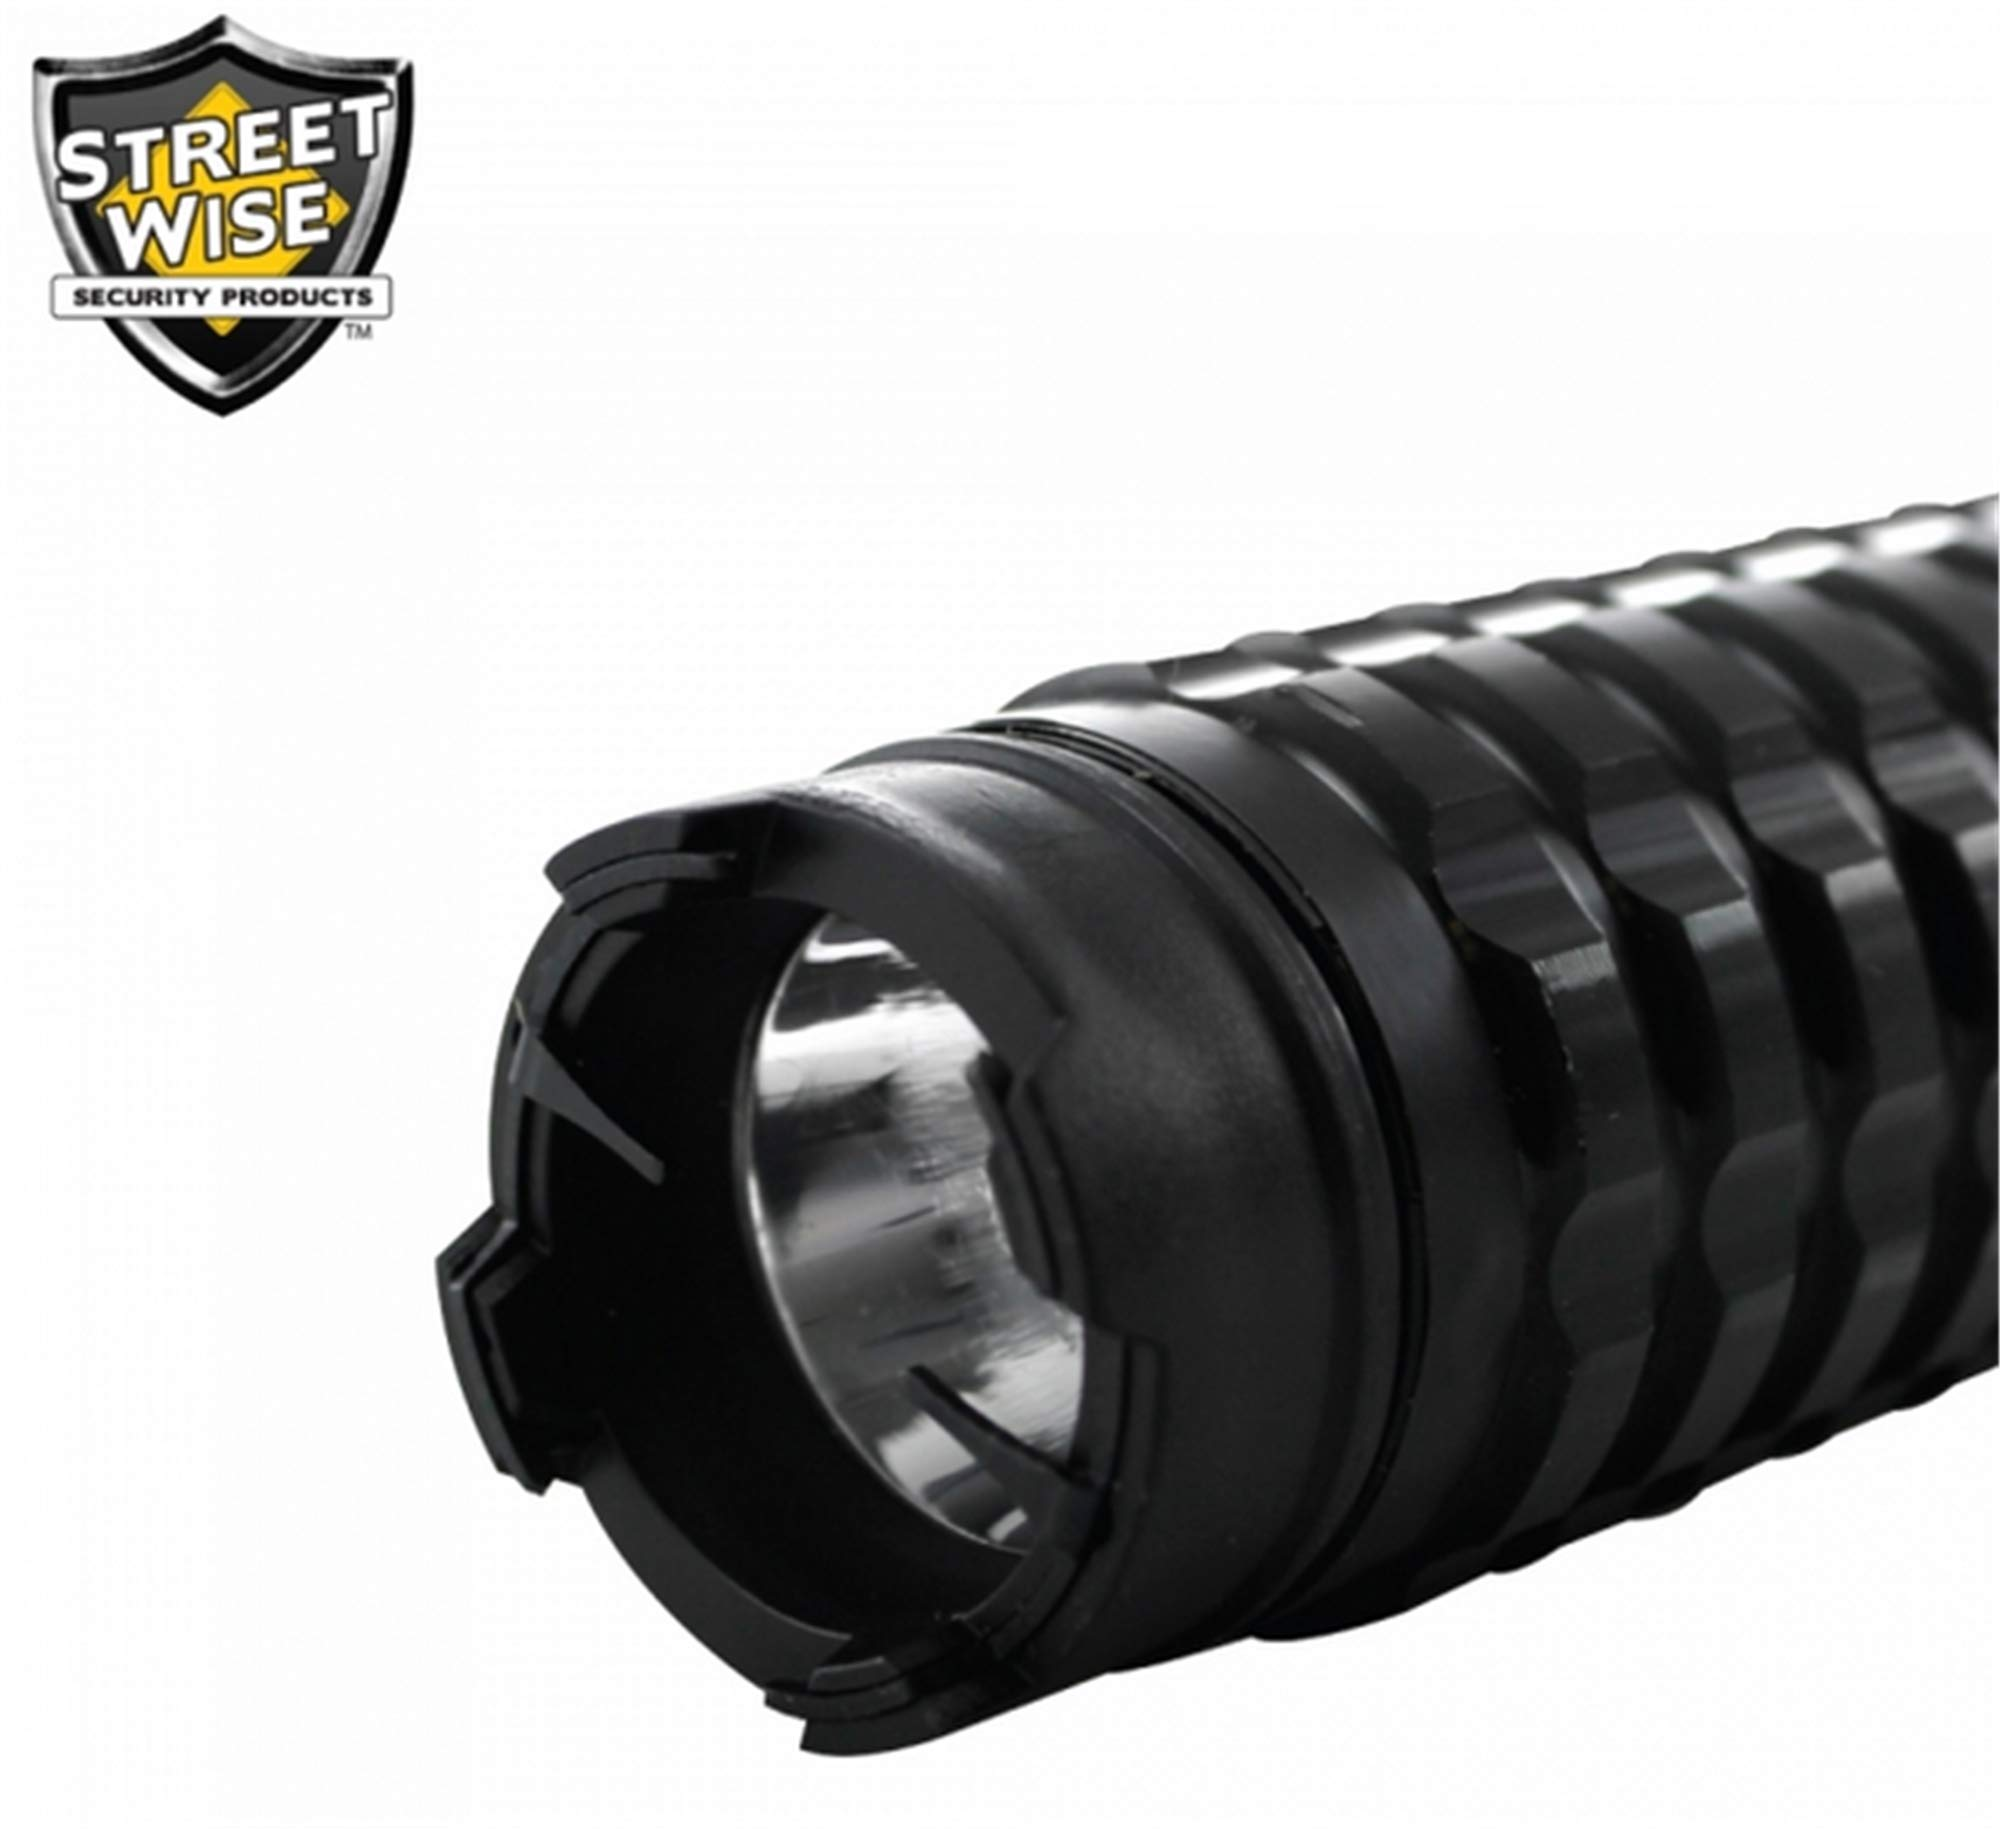 Diamondback Adjustable 13M Extendable Stun Gun 5 Mode Flashlight Rechargeable and Replaceable Batteries with Free Survival Whistle, Holster and Hard Shell Case by Diamondback